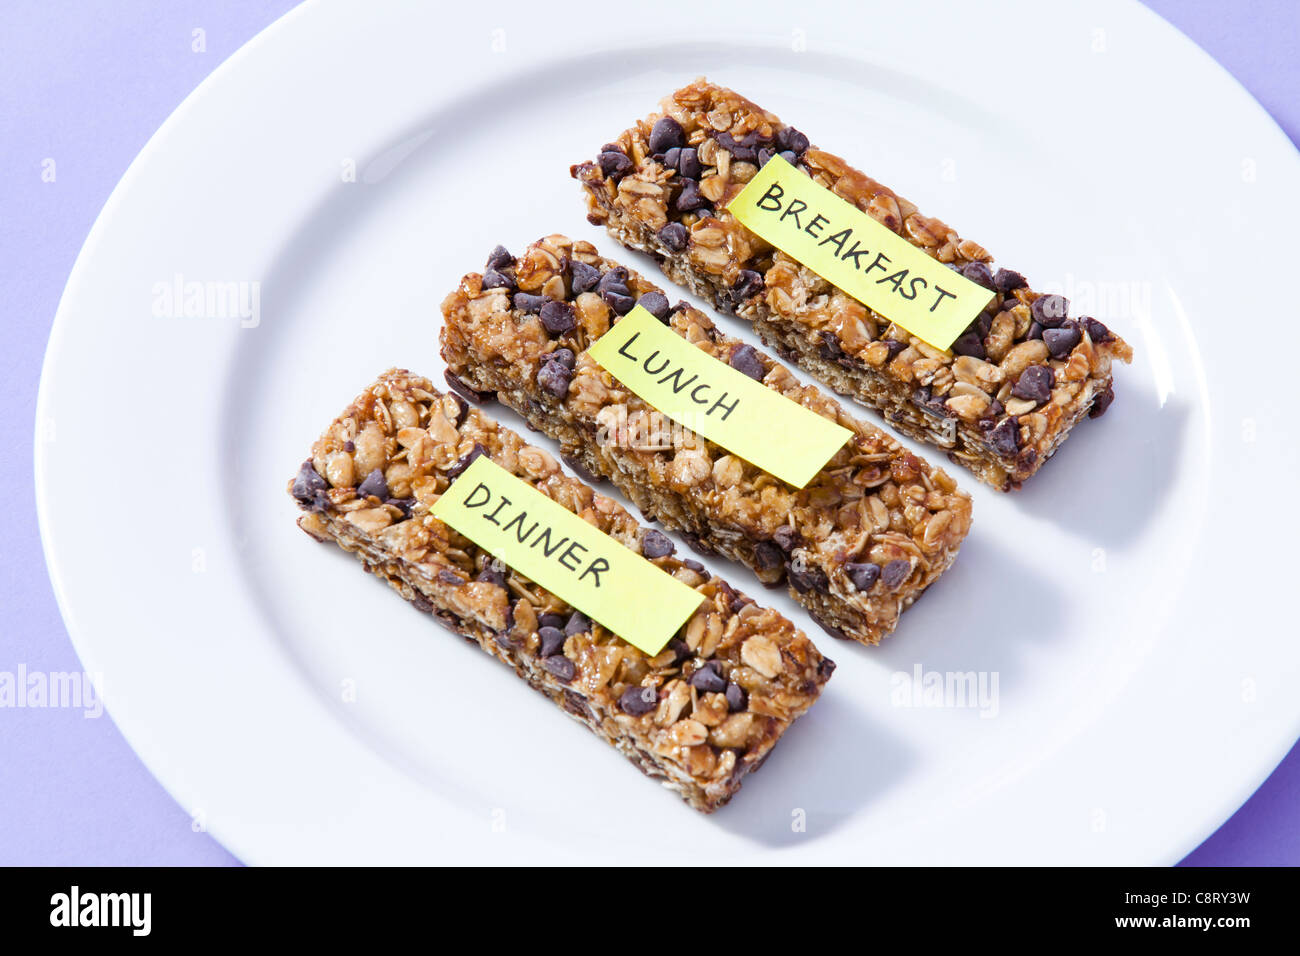 Close-up of health bars with label stuck on it - Stock Image